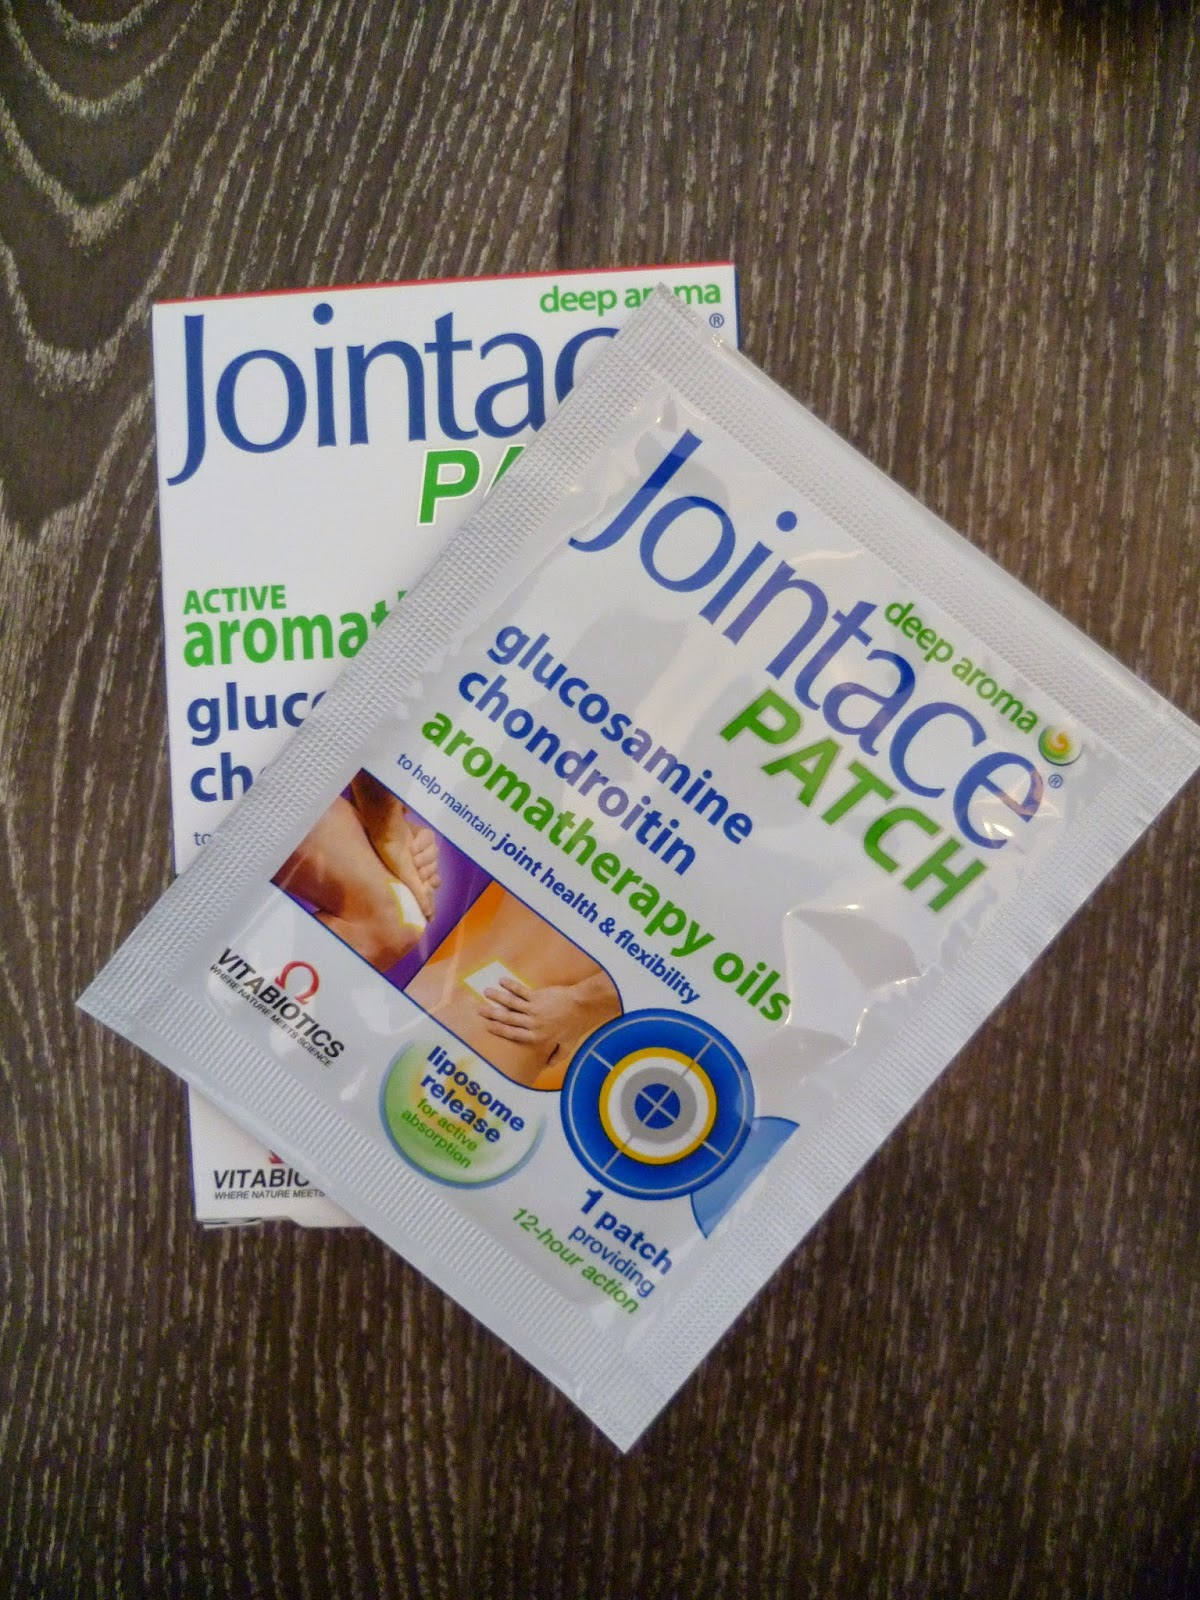 Jointace Patches